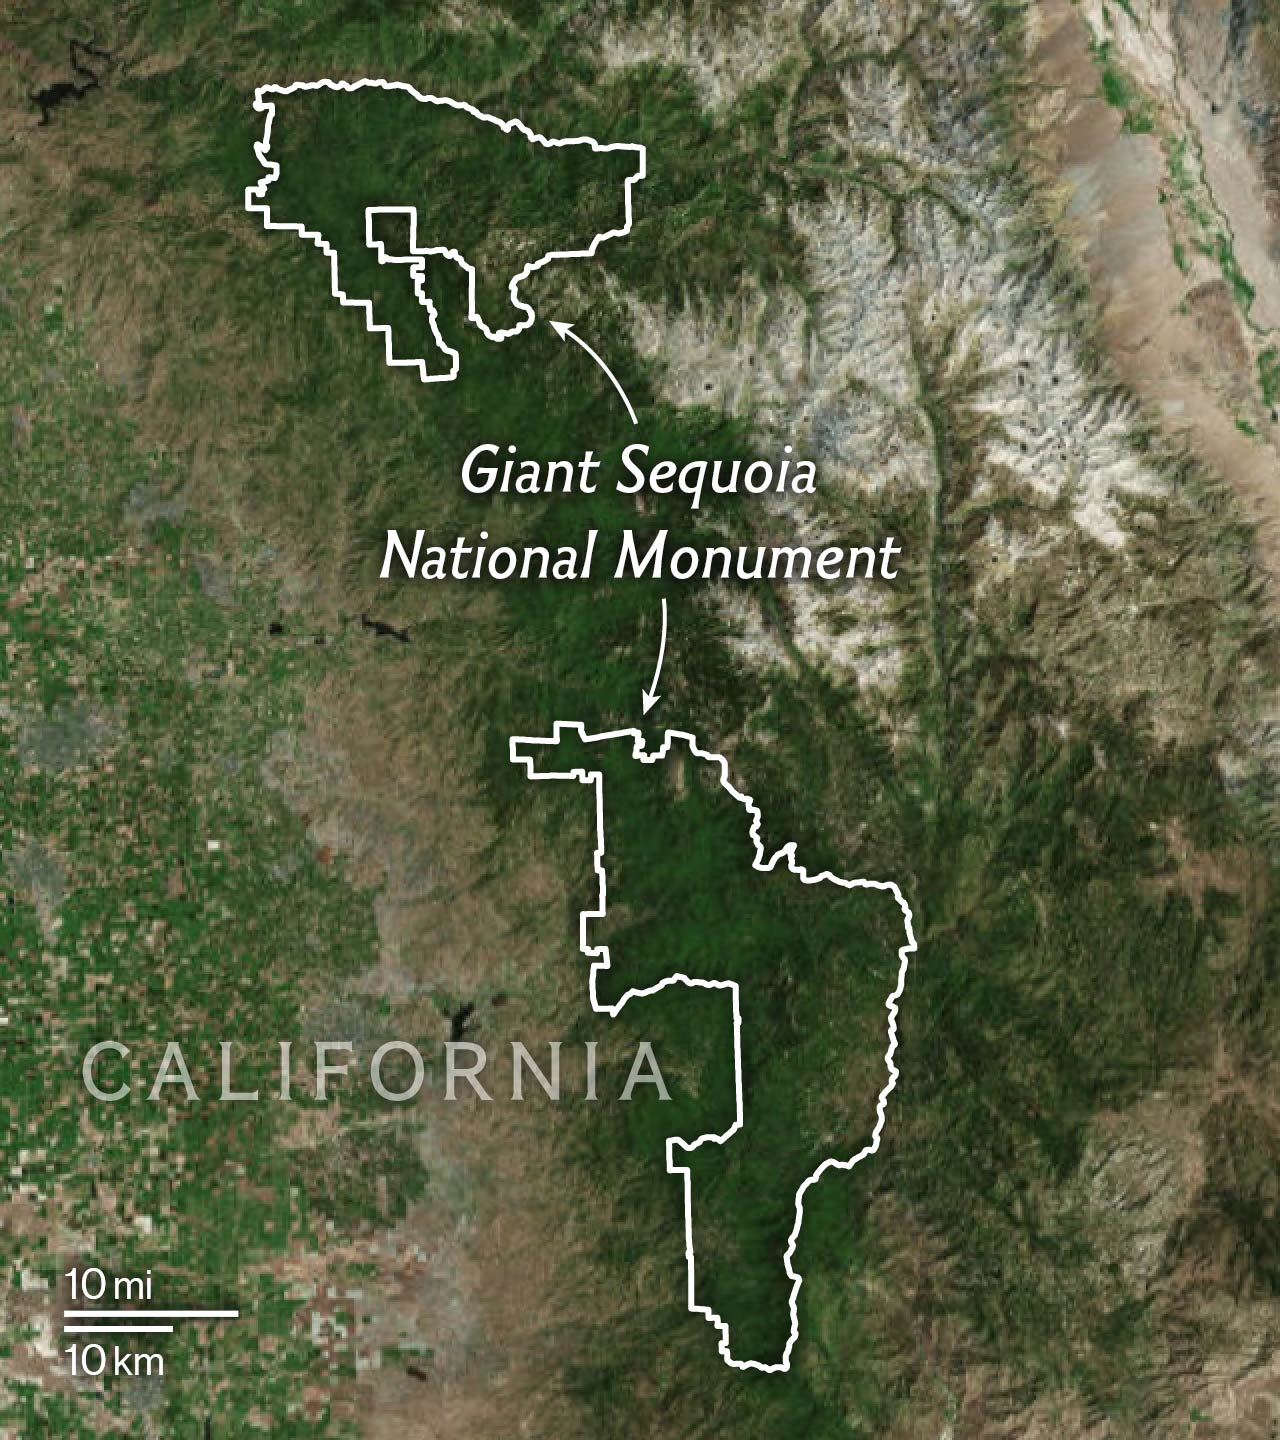 Maps Explain the 27 National Monuments Under Review by Trump